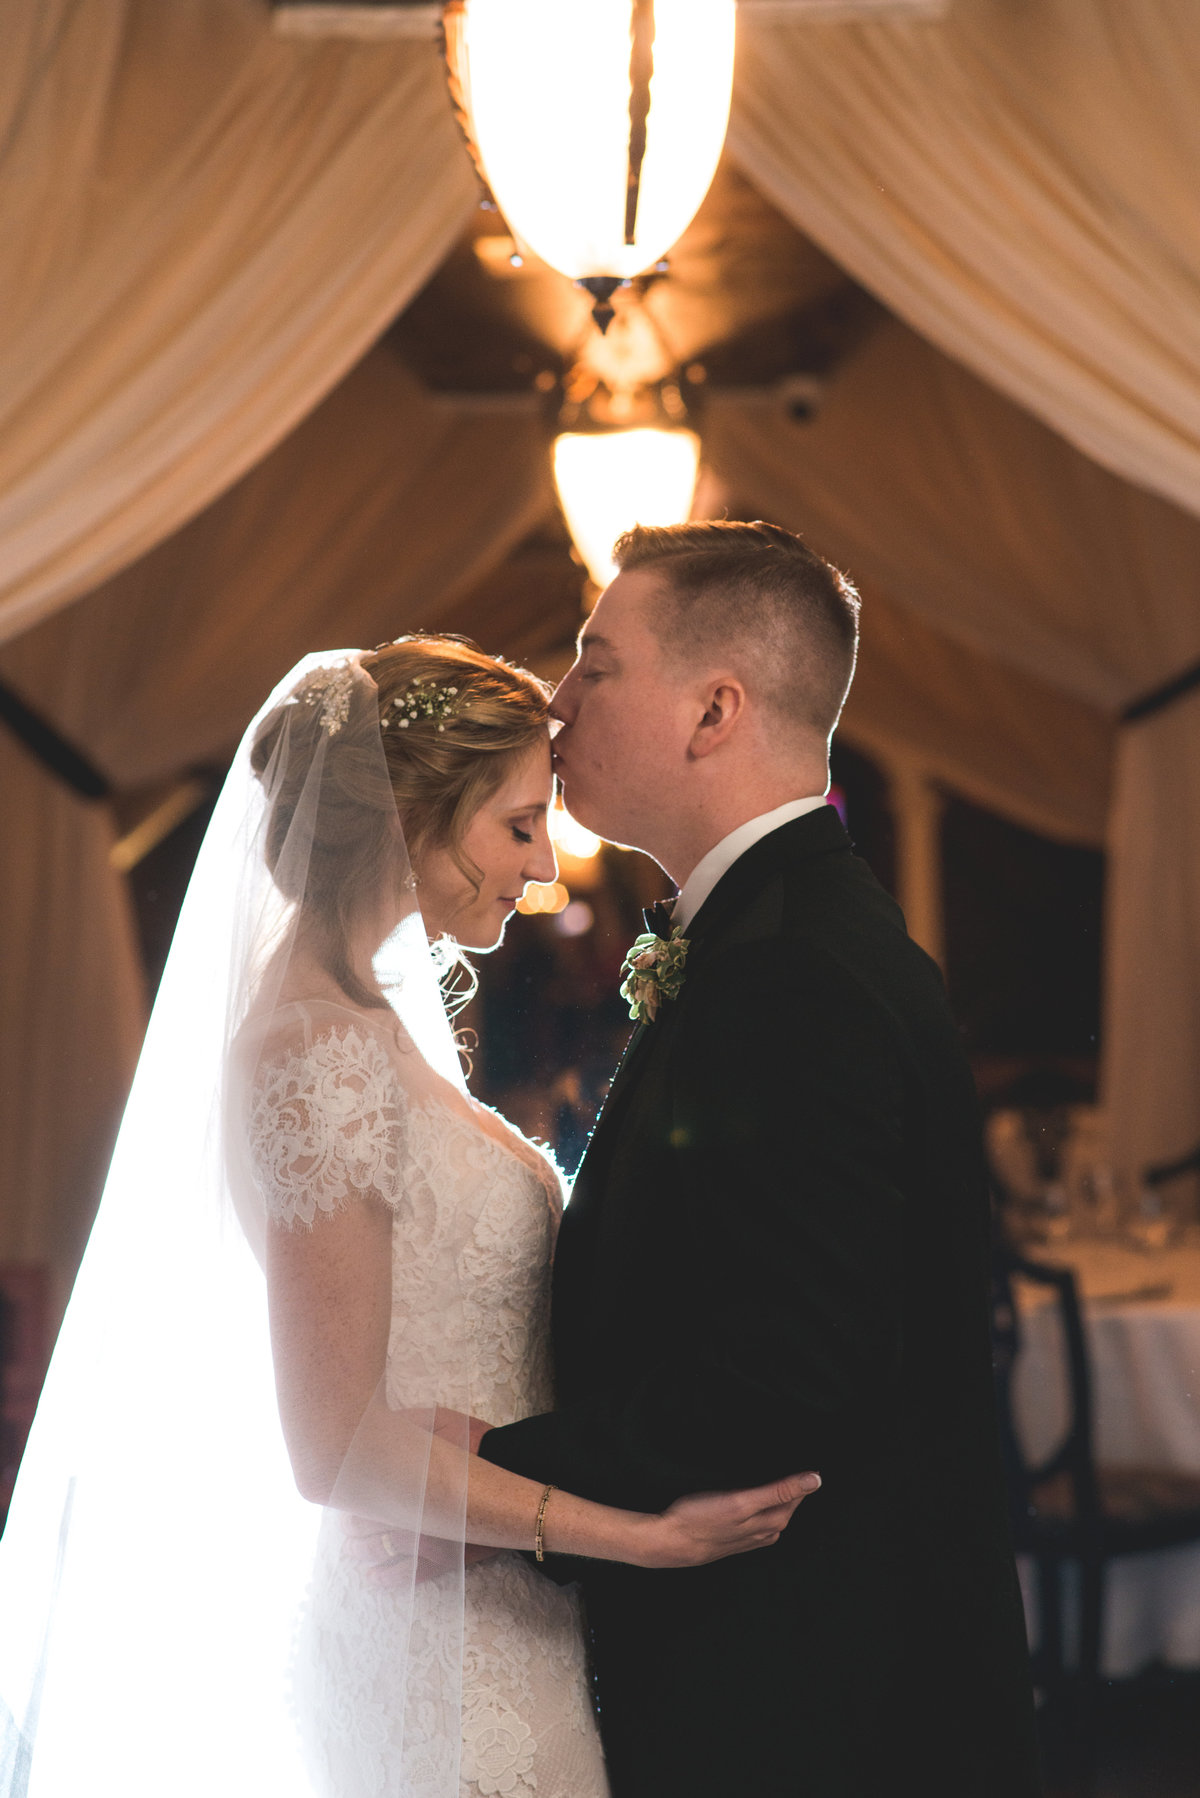 photo of groom kissing bride on the forehead from wedding at The Carltun